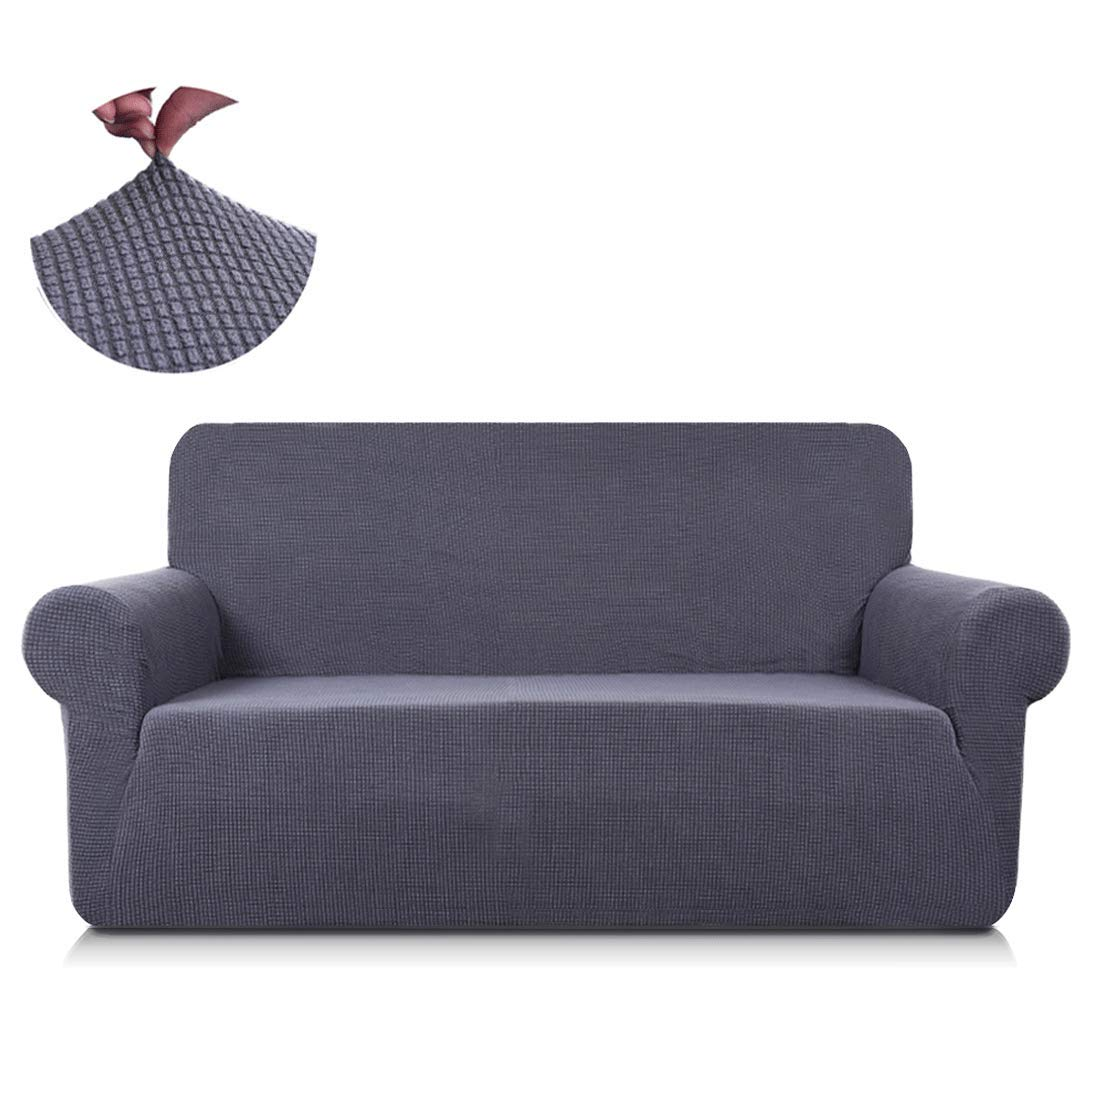 Wondrous Tastelife Sofa Couch Cover Loveseat Slipcover 1 Piece Stretch Jacquard Armchair Shield 2 Seat Furniture Protector Chair For Living Room Gray Love Seat Ocoug Best Dining Table And Chair Ideas Images Ocougorg